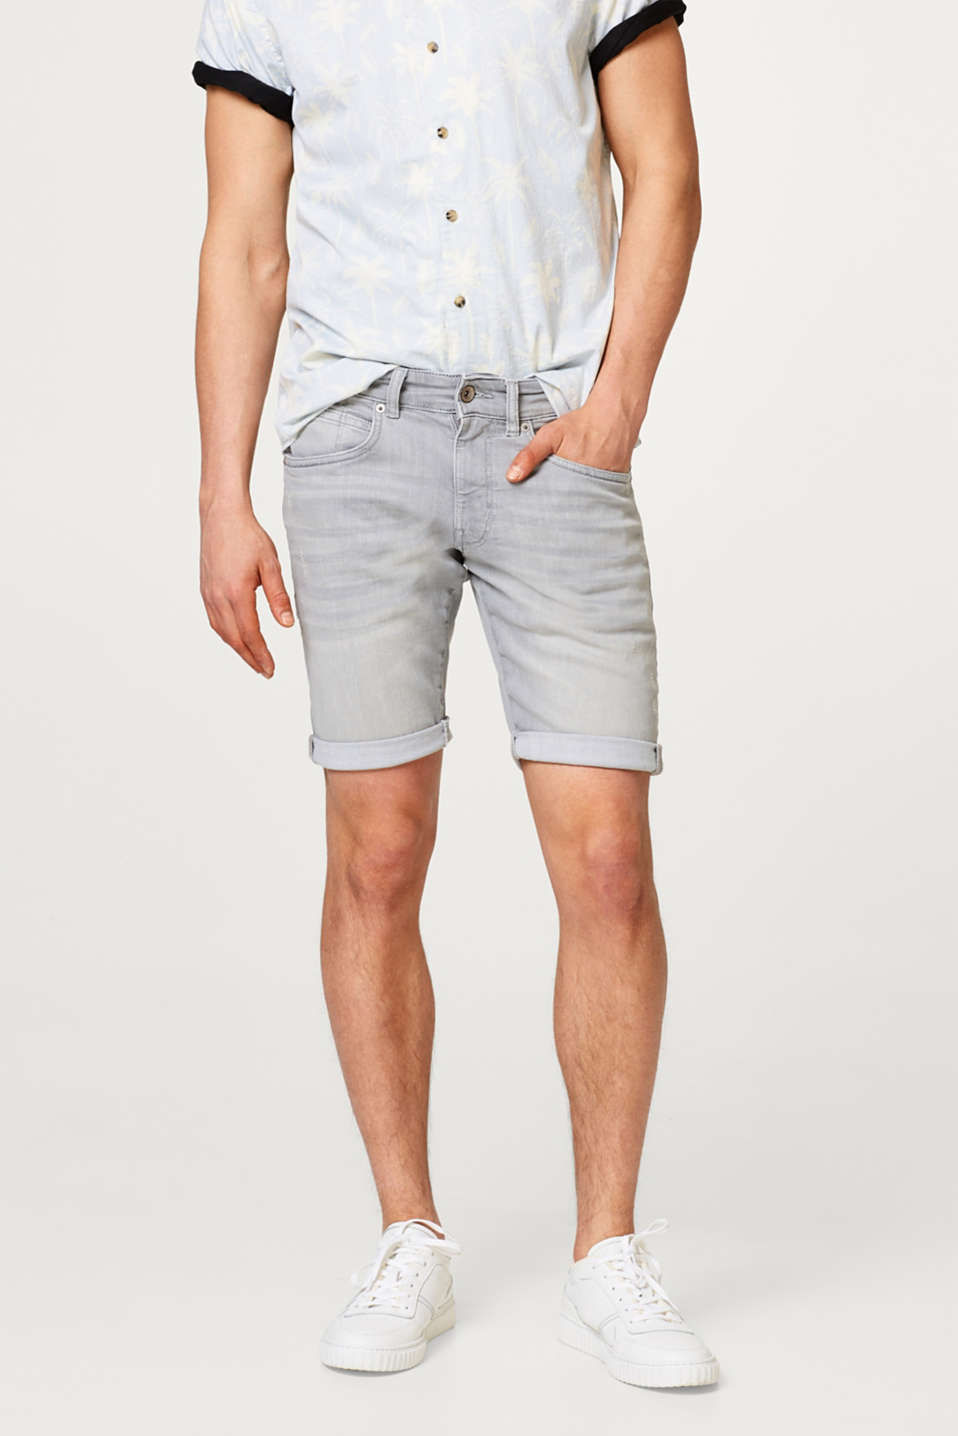 Esprit - Short en jean super stretch avec la technologie COOLMAX®